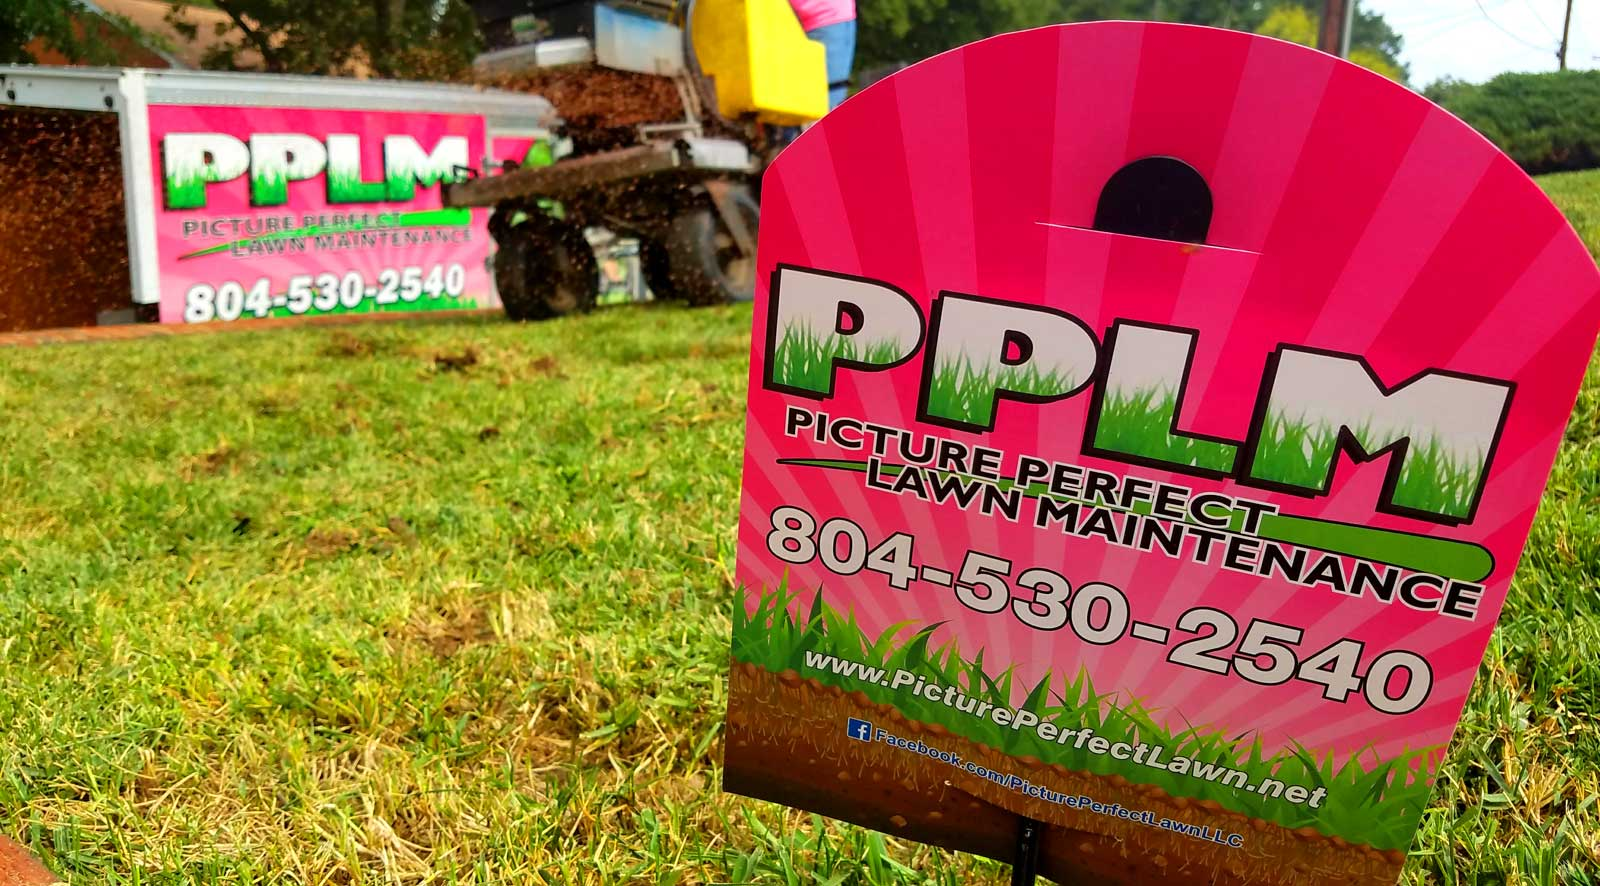 Core Aeration and Seeding | Fertilization | Picture Perfect Lawn Maintenance | (804) 530-2540